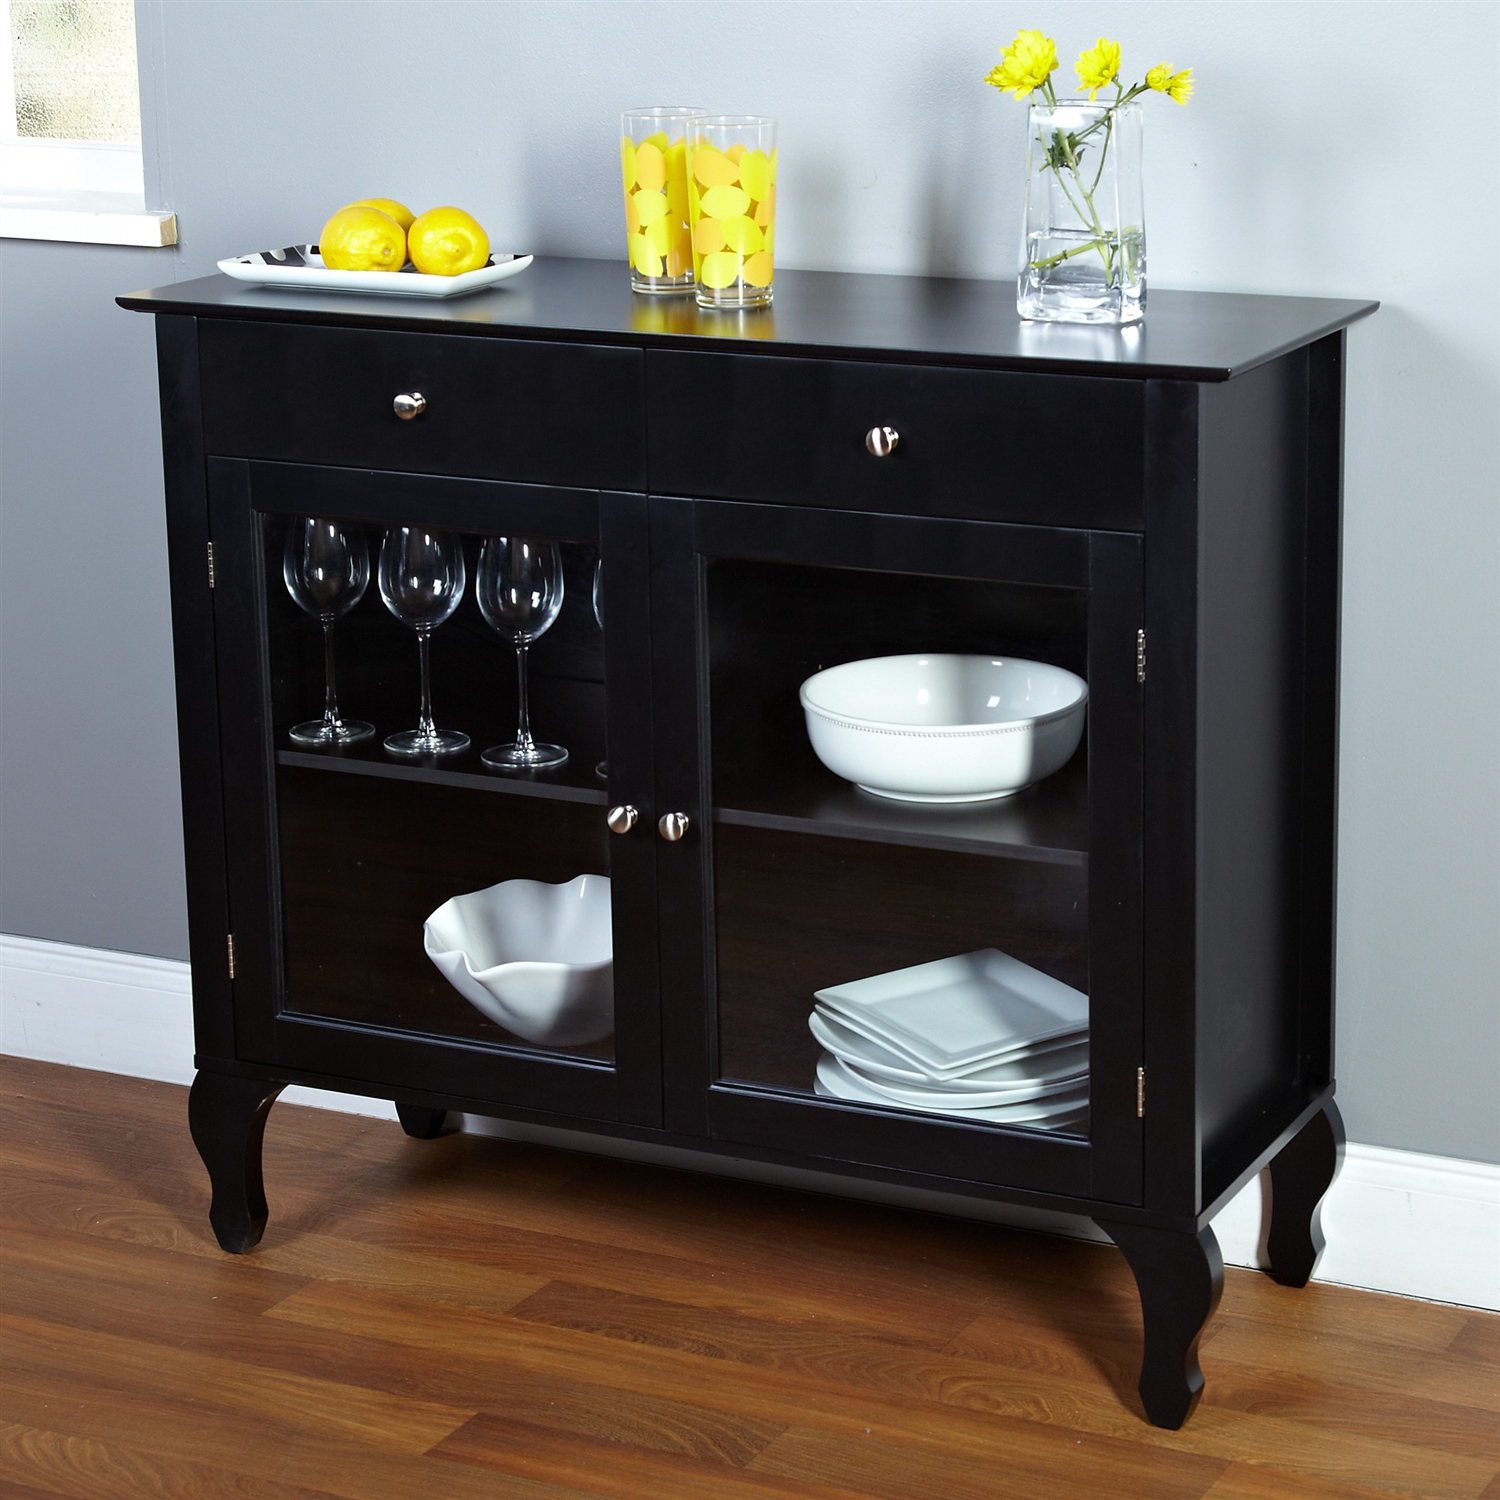 Black Dining Room Buffet Sideboard Server Cabinet with Glass Doors ...